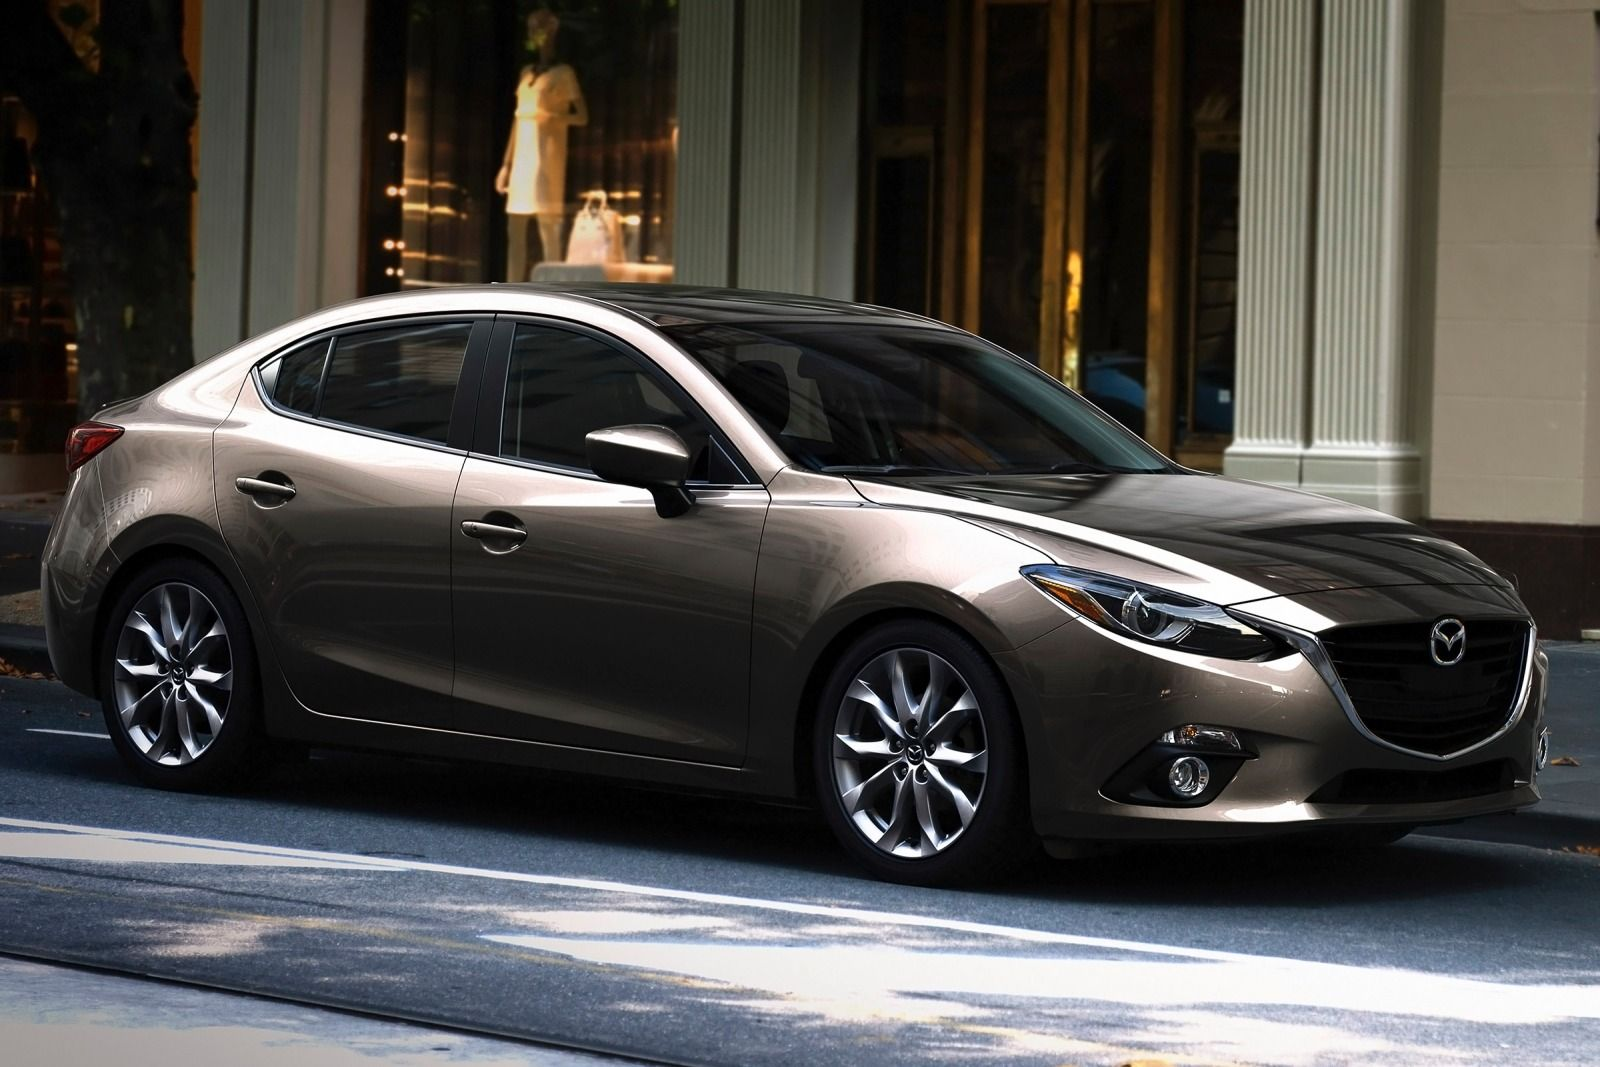 pic mazda cargurus soul worthy exterior msrp price touring red grand gallery cars